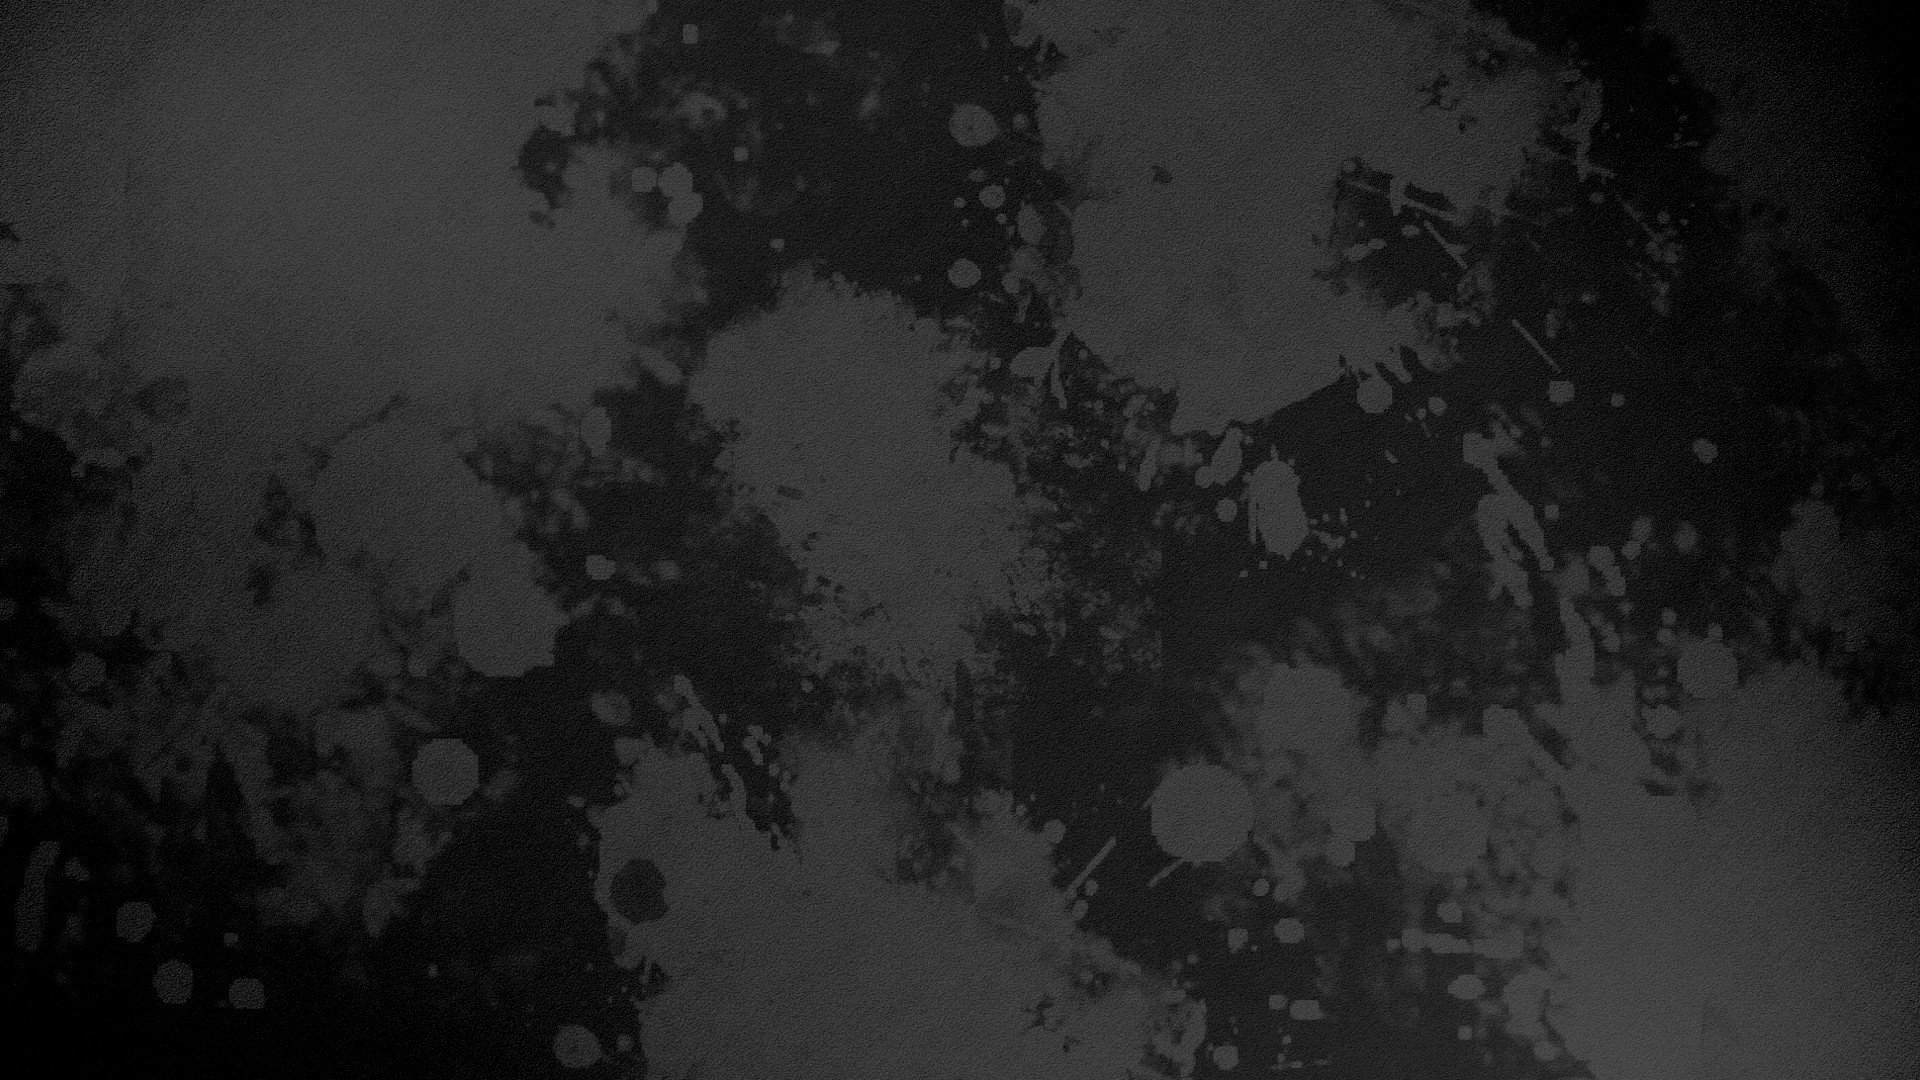 abstract black grunge textures wallpaper background 1920x1080